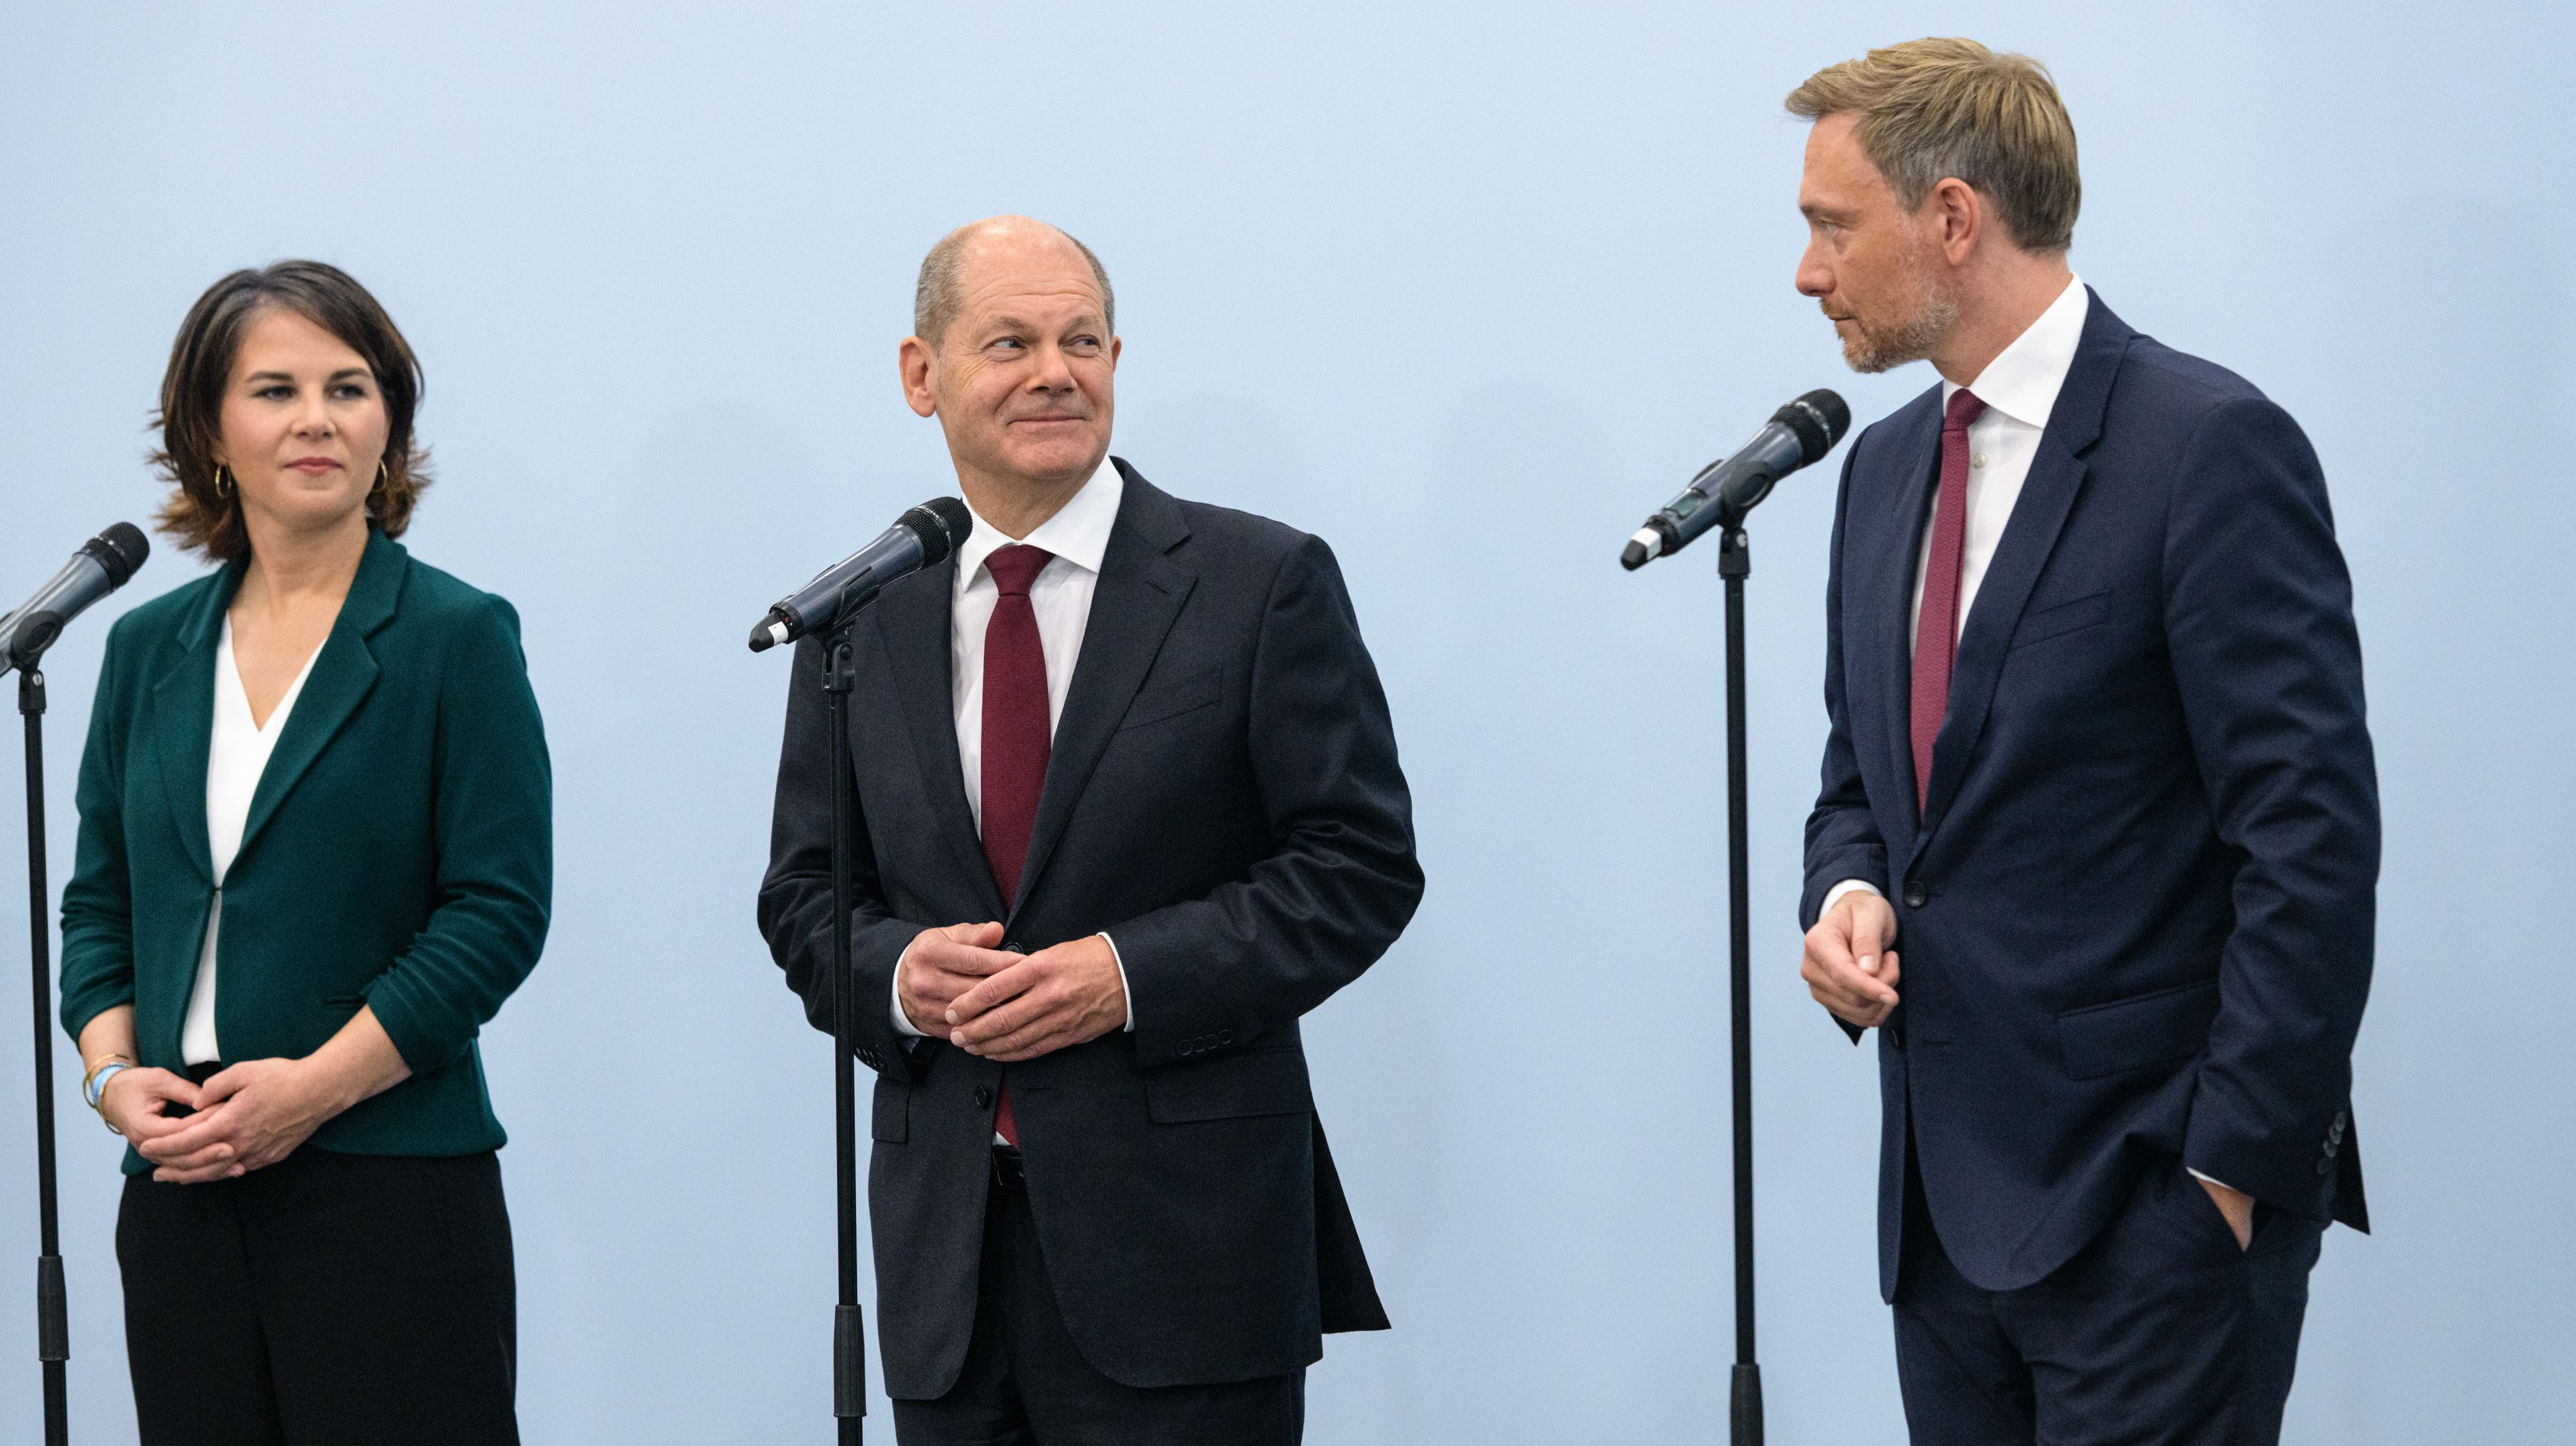 SPD, Greens And FDP To Conclude Exploratory Talks, Possibly Announce Coalition Intent